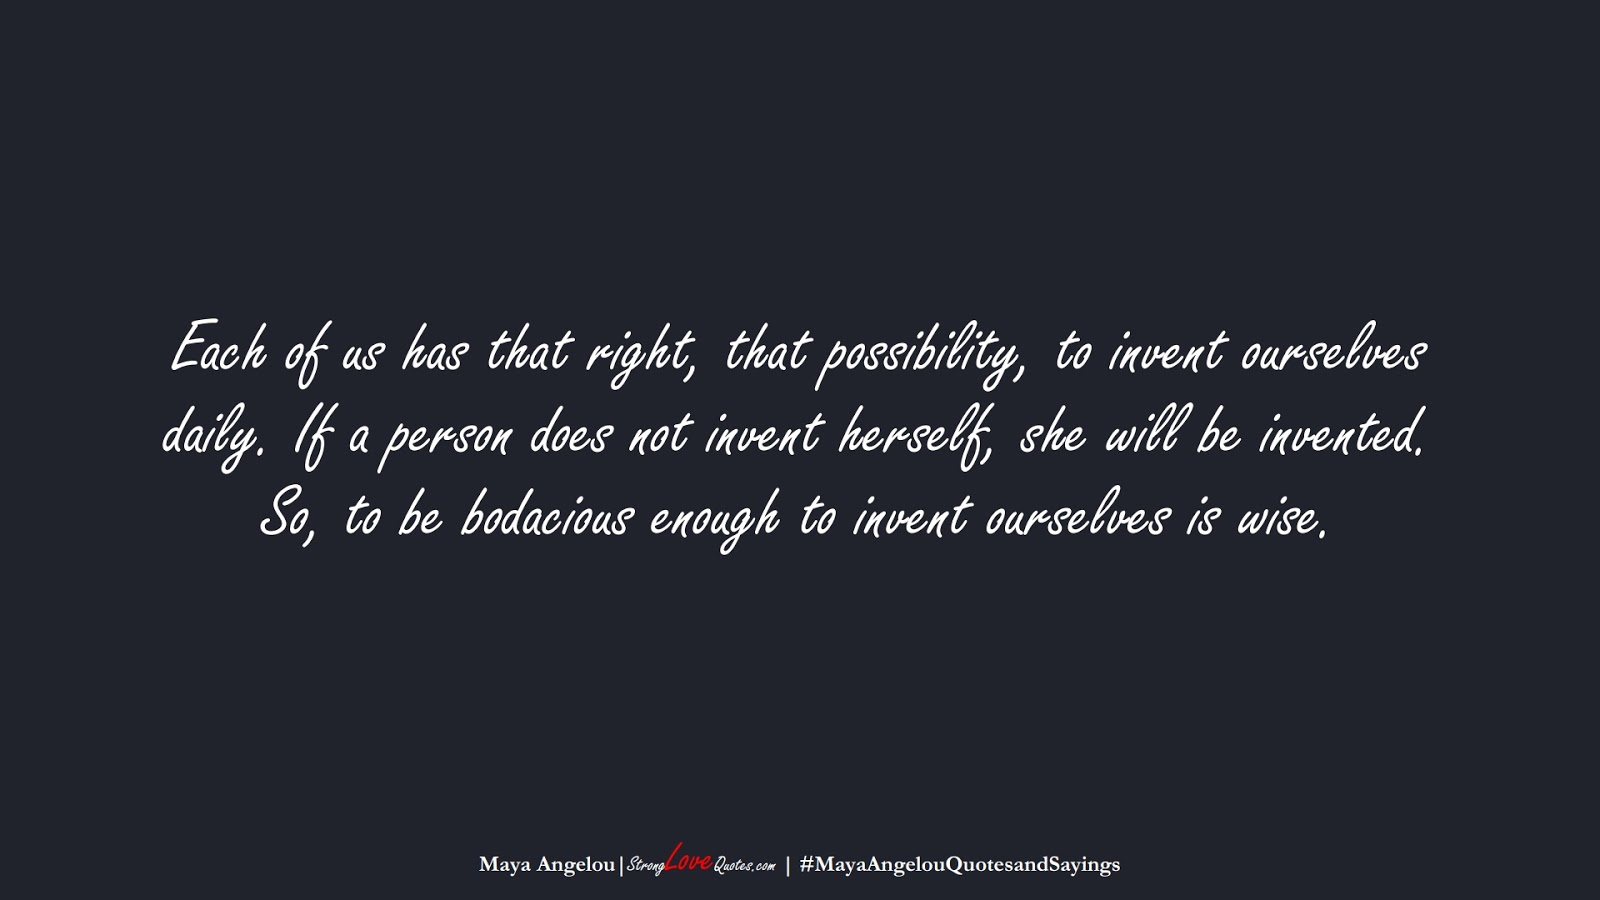 Each of us has that right, that possibility, to invent ourselves daily. If a person does not invent herself, she will be invented. So, to be bodacious enough to invent ourselves is wise. (Maya Angelou);  #MayaAngelouQuotesandSayings